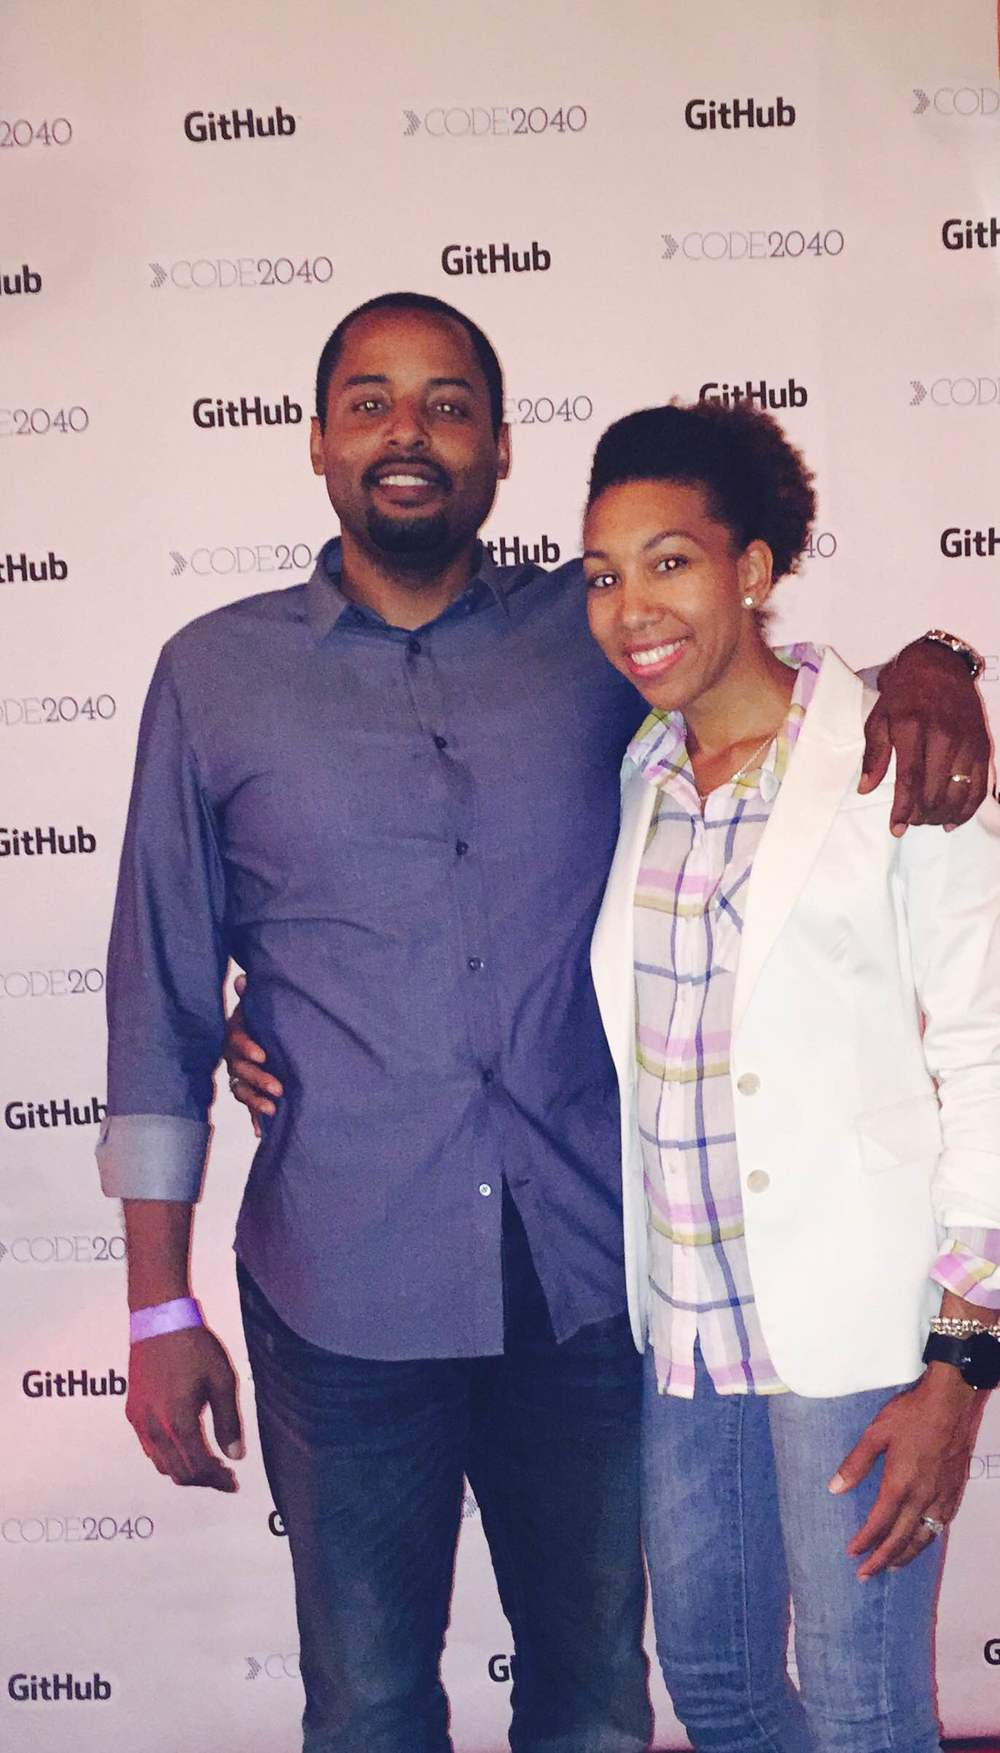 My husband @Code2040's Kick It event in San Francisco hosted by GitHub